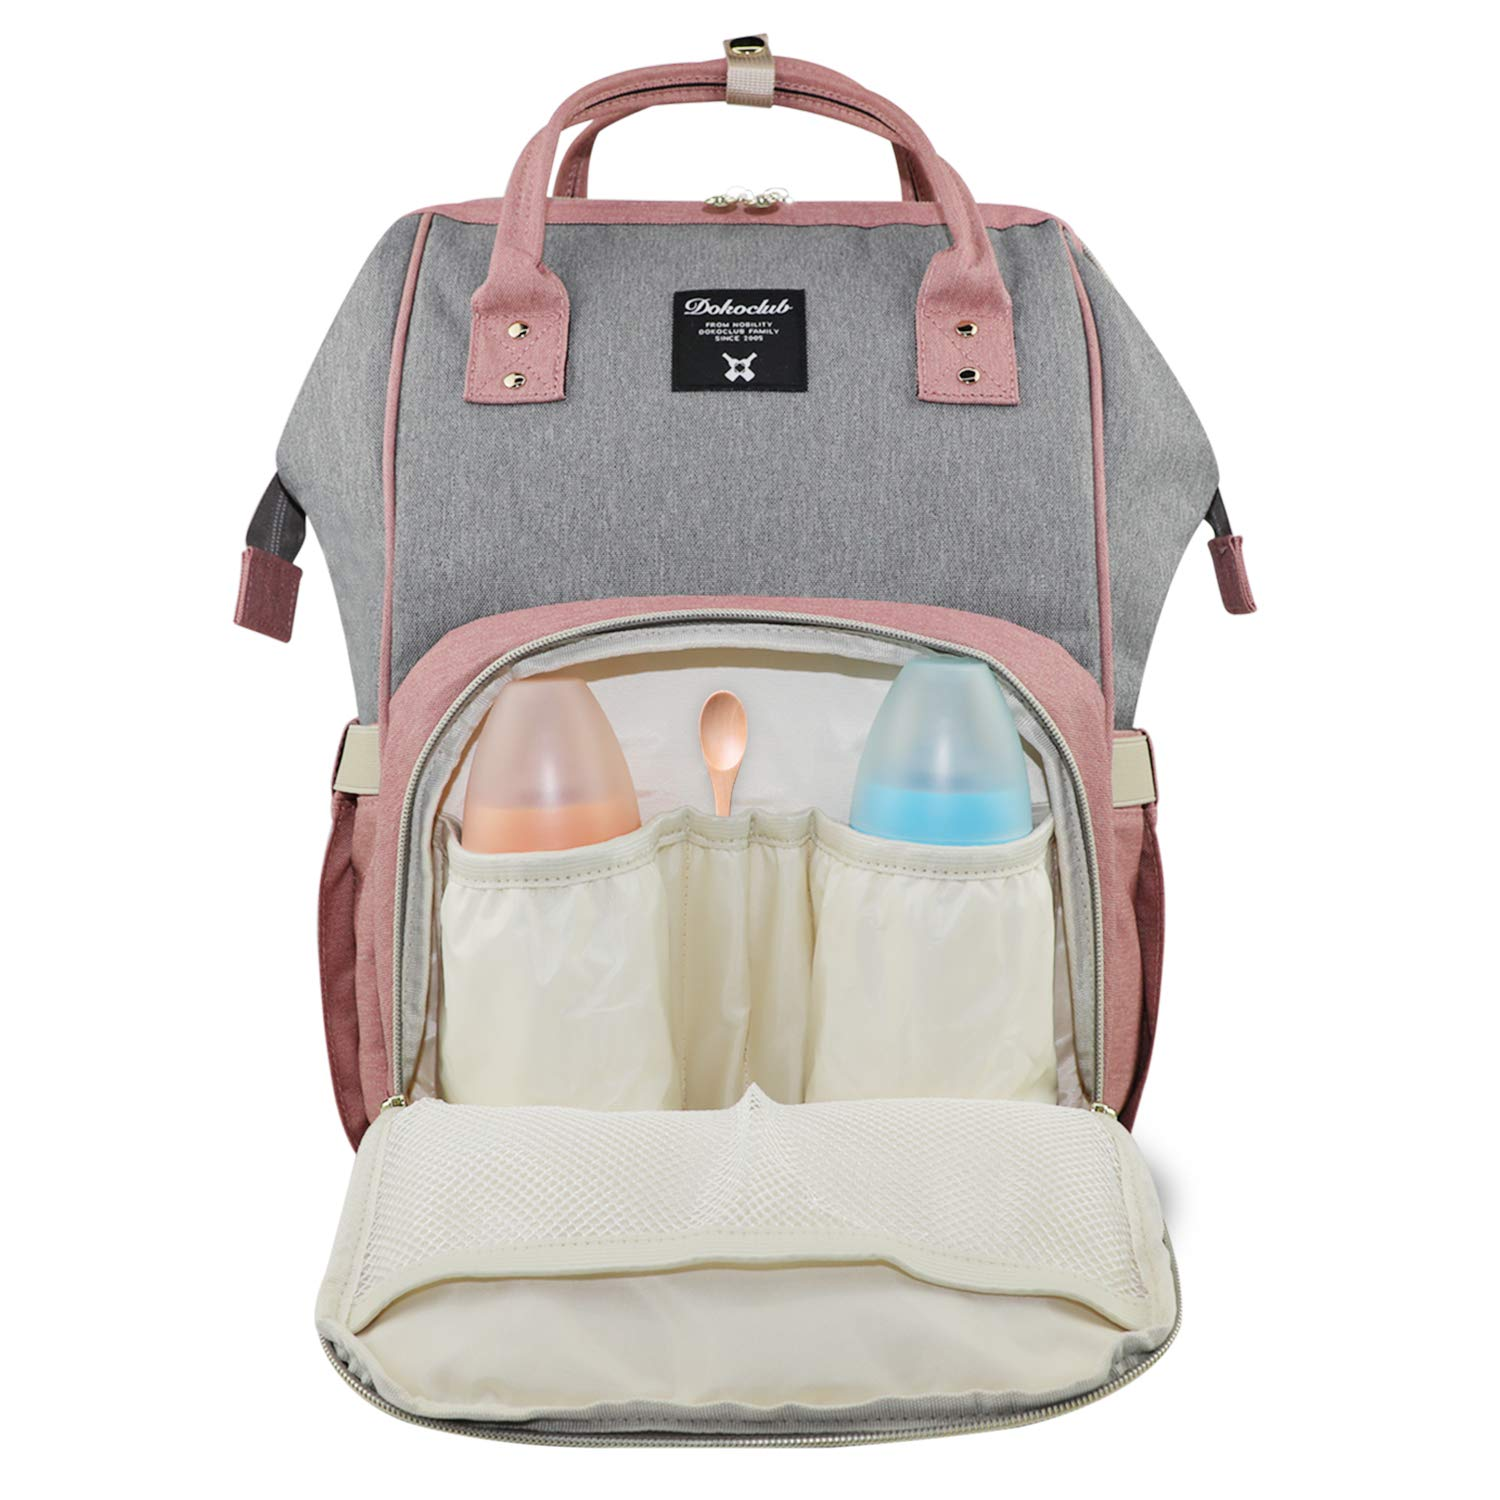 Vakabva Diaper Bag Backpack, Waterproof Diaper Bag Large Capacity Mommy Backpack Baby Nappy Bags with Multi-Function, Durable and Stylish (Pink with Grey)